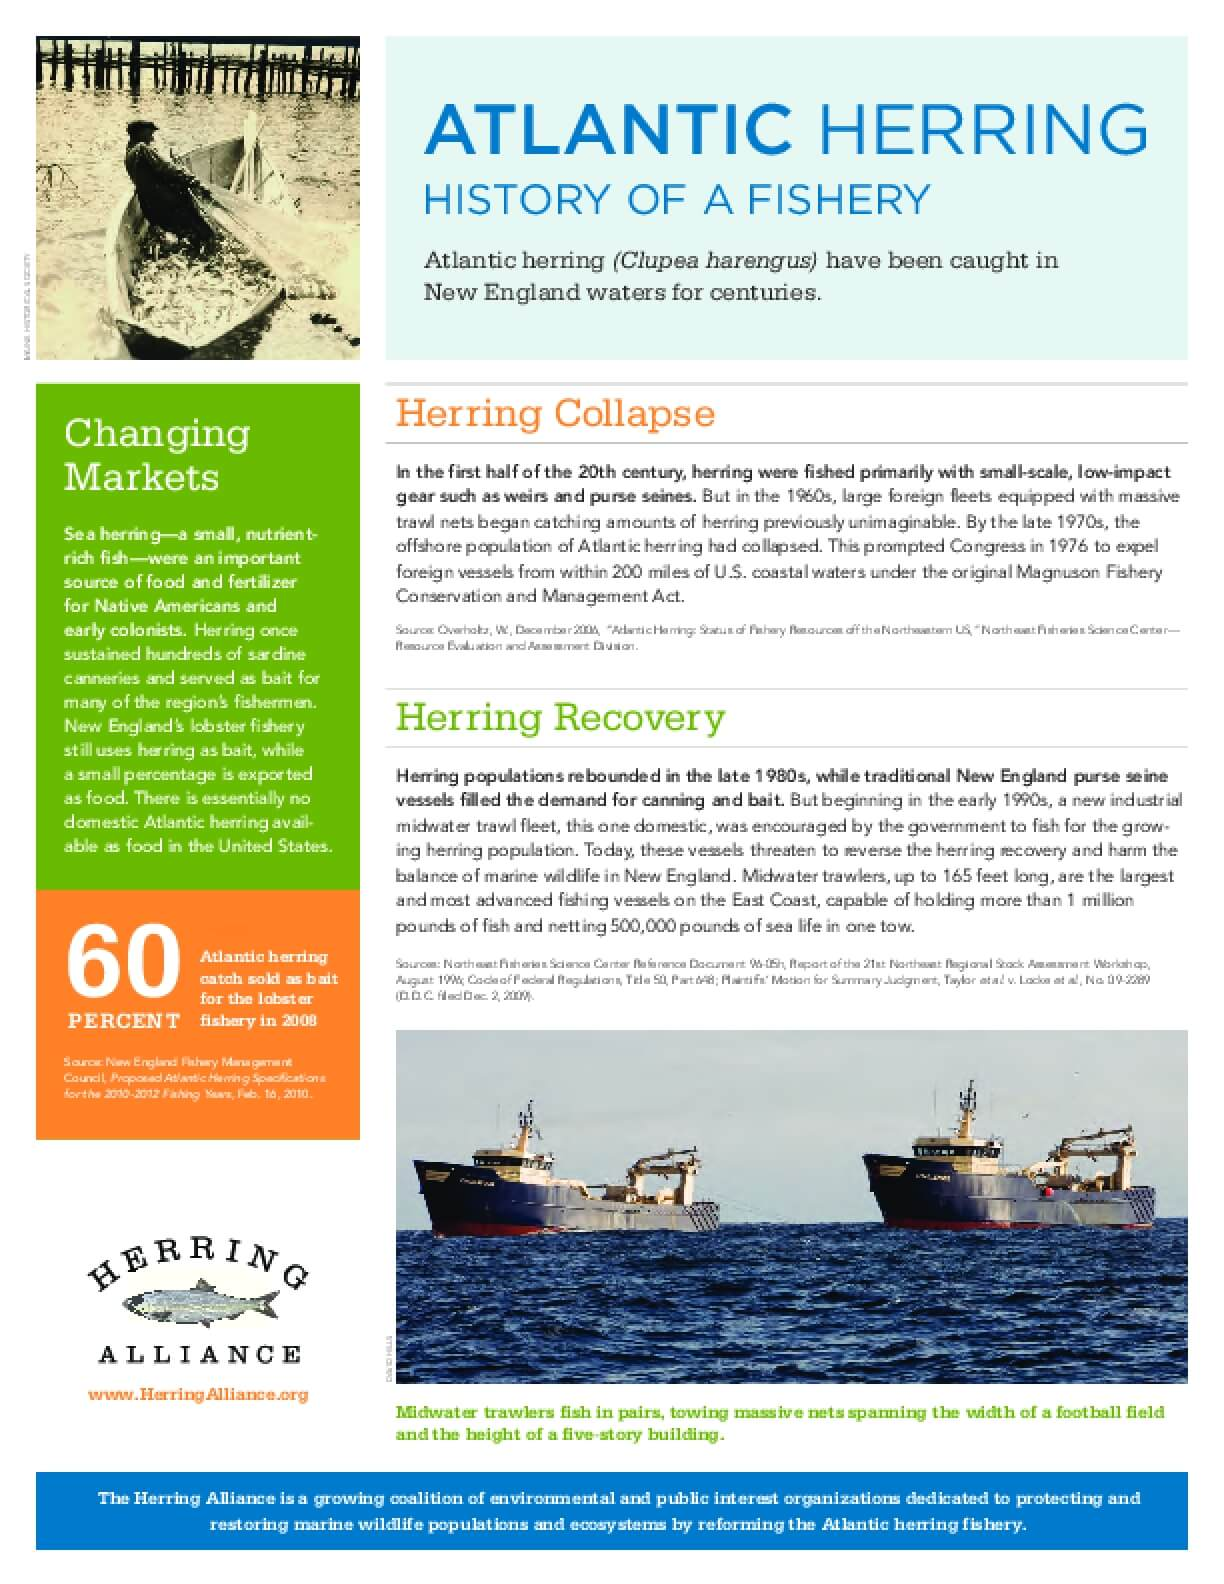 Atlantic Herring: History of a Fishery